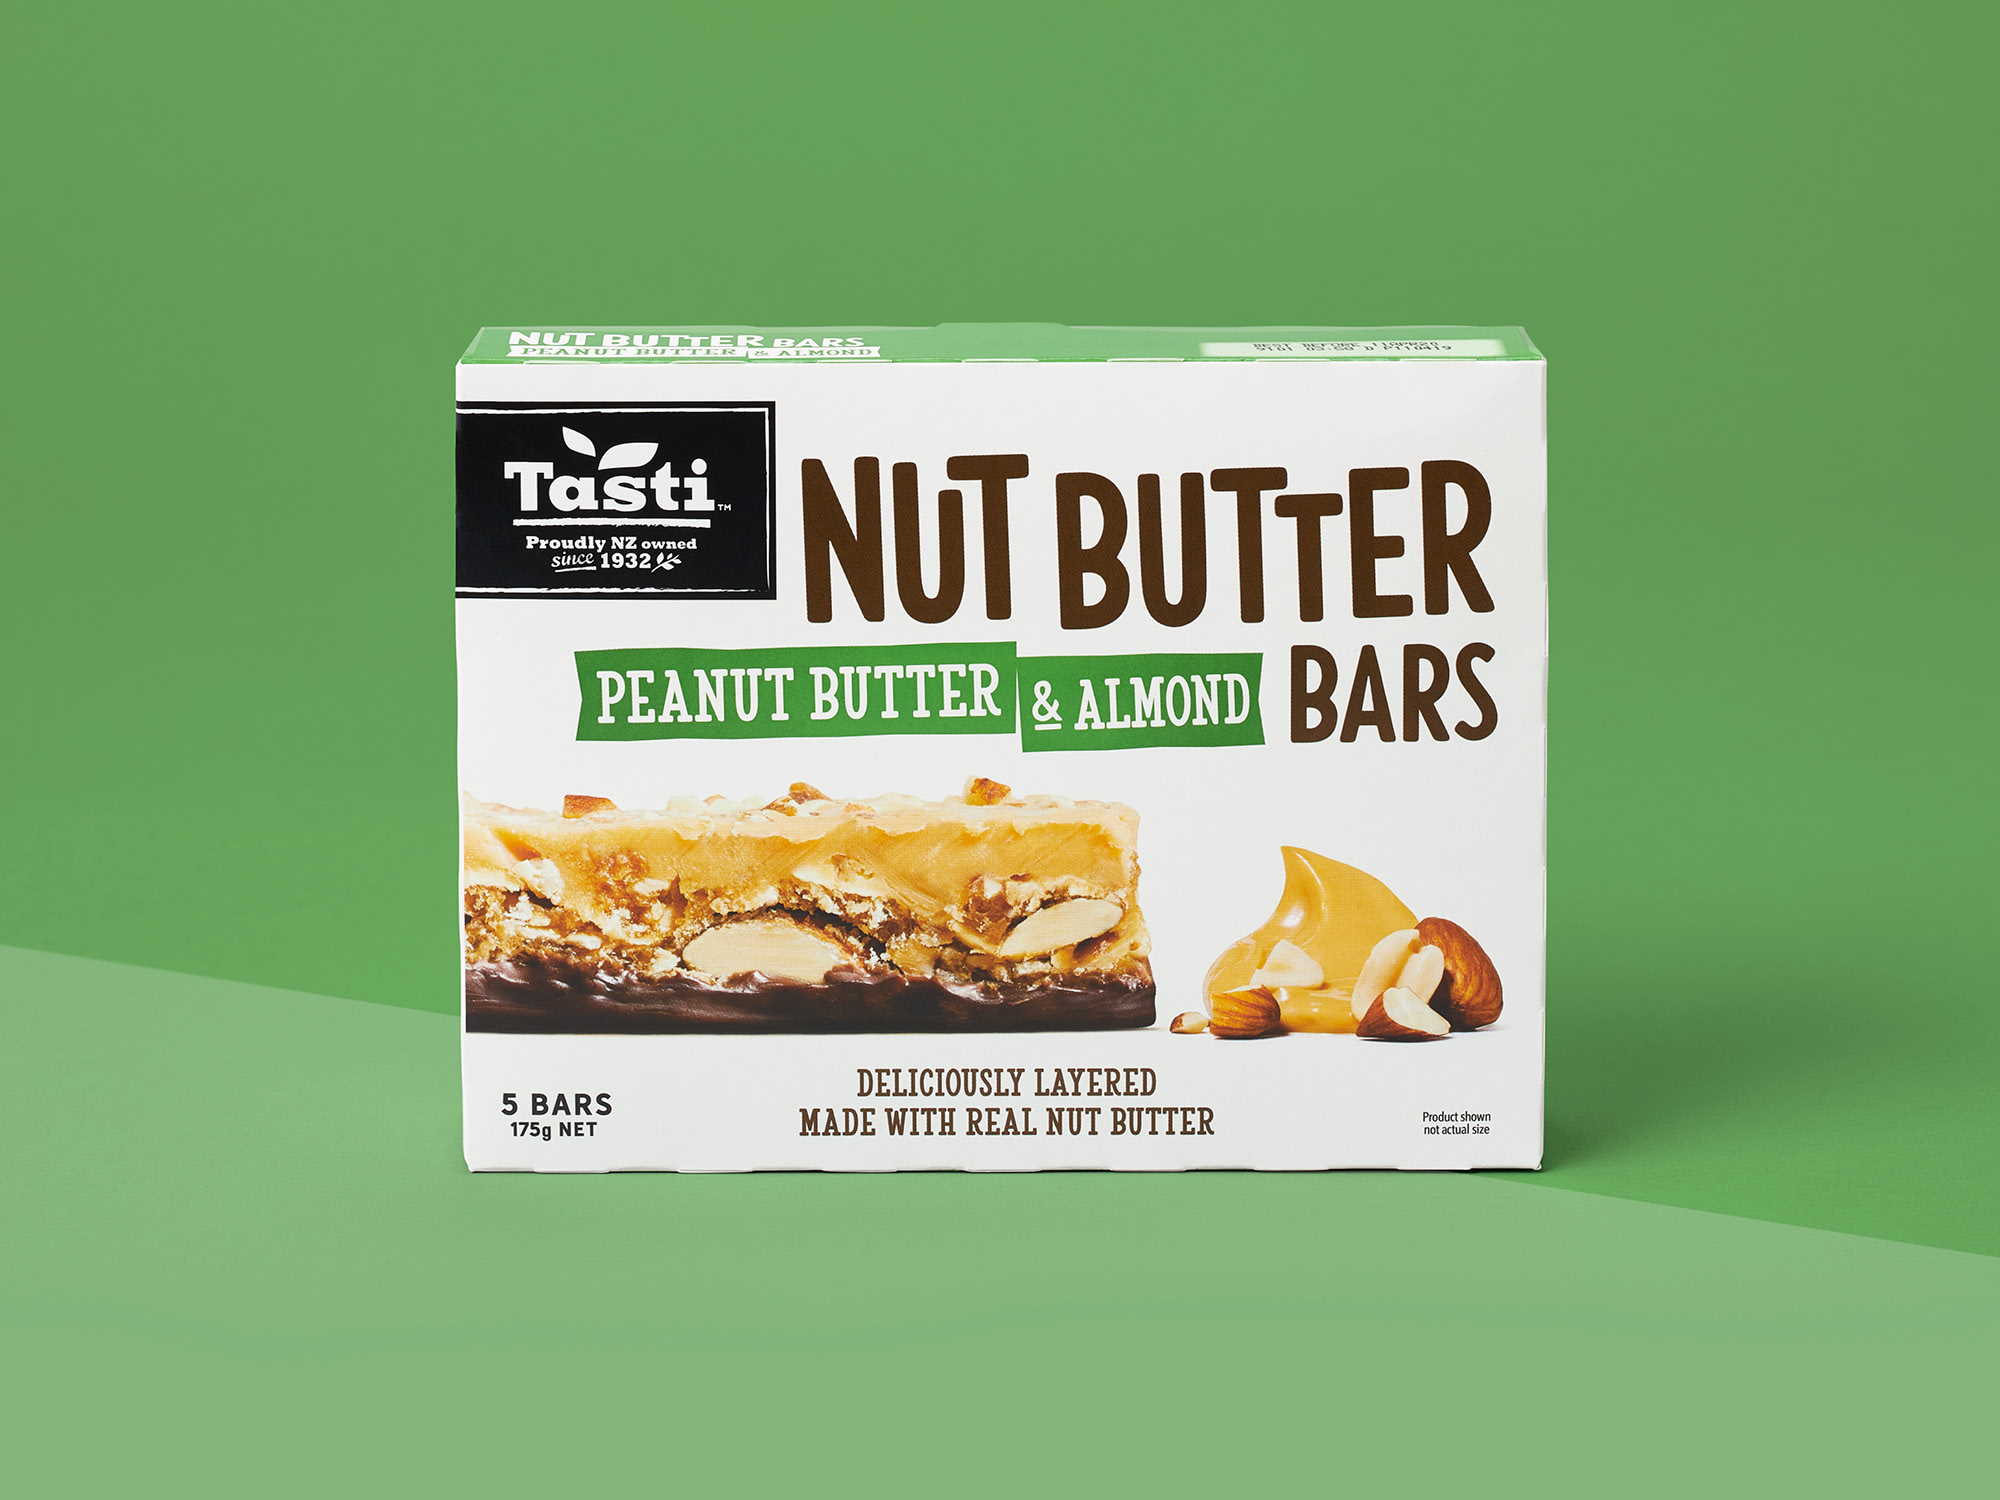 onfire design tast nut butter bar packaging design 7